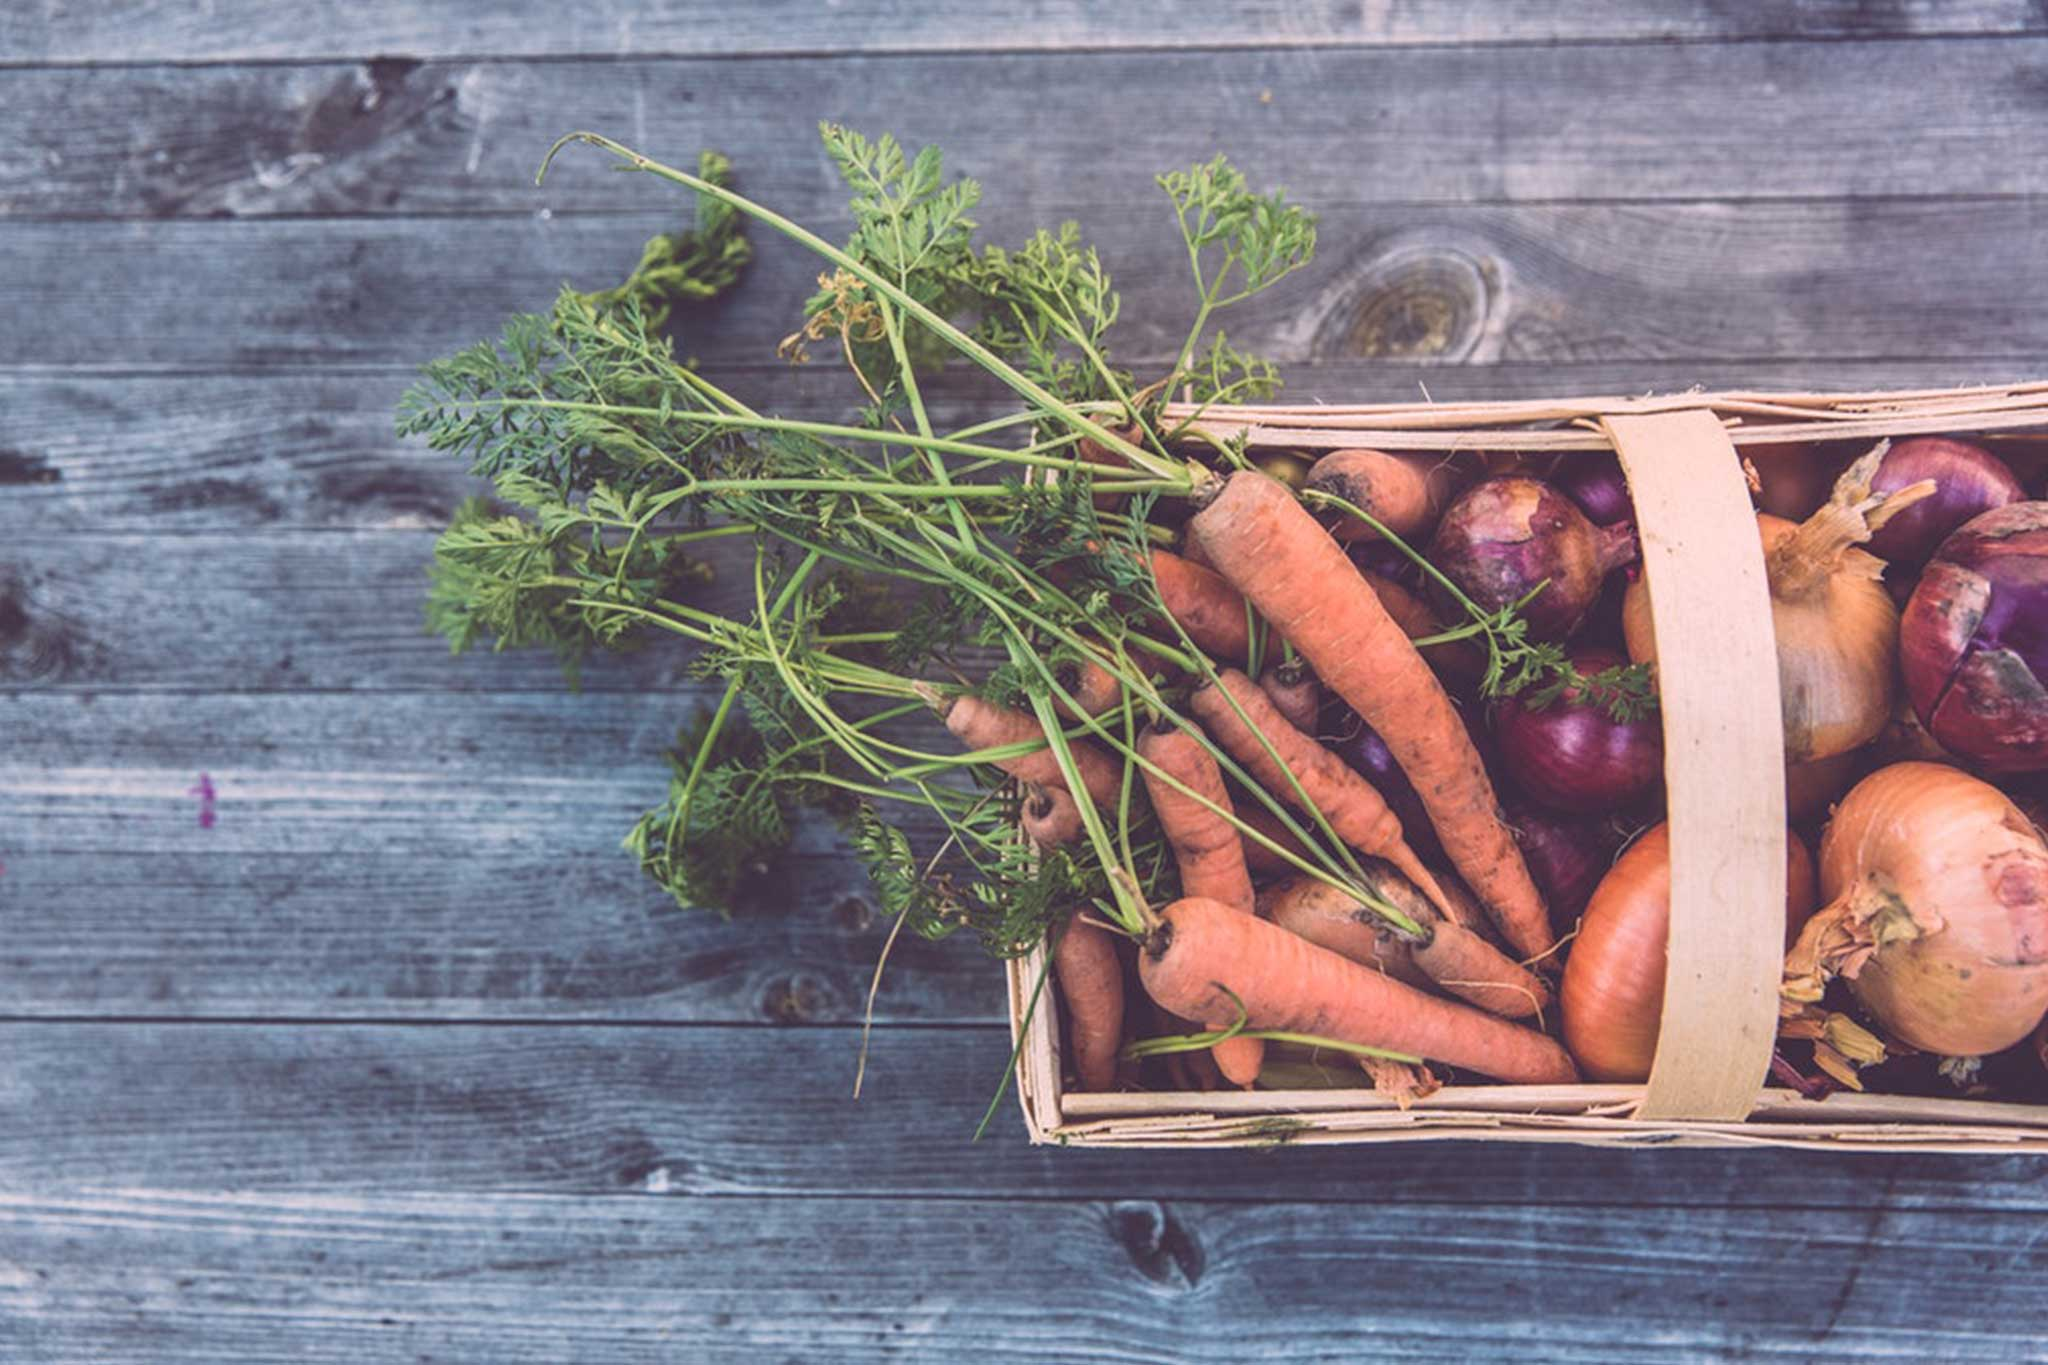 Is it better to buy local or organic?